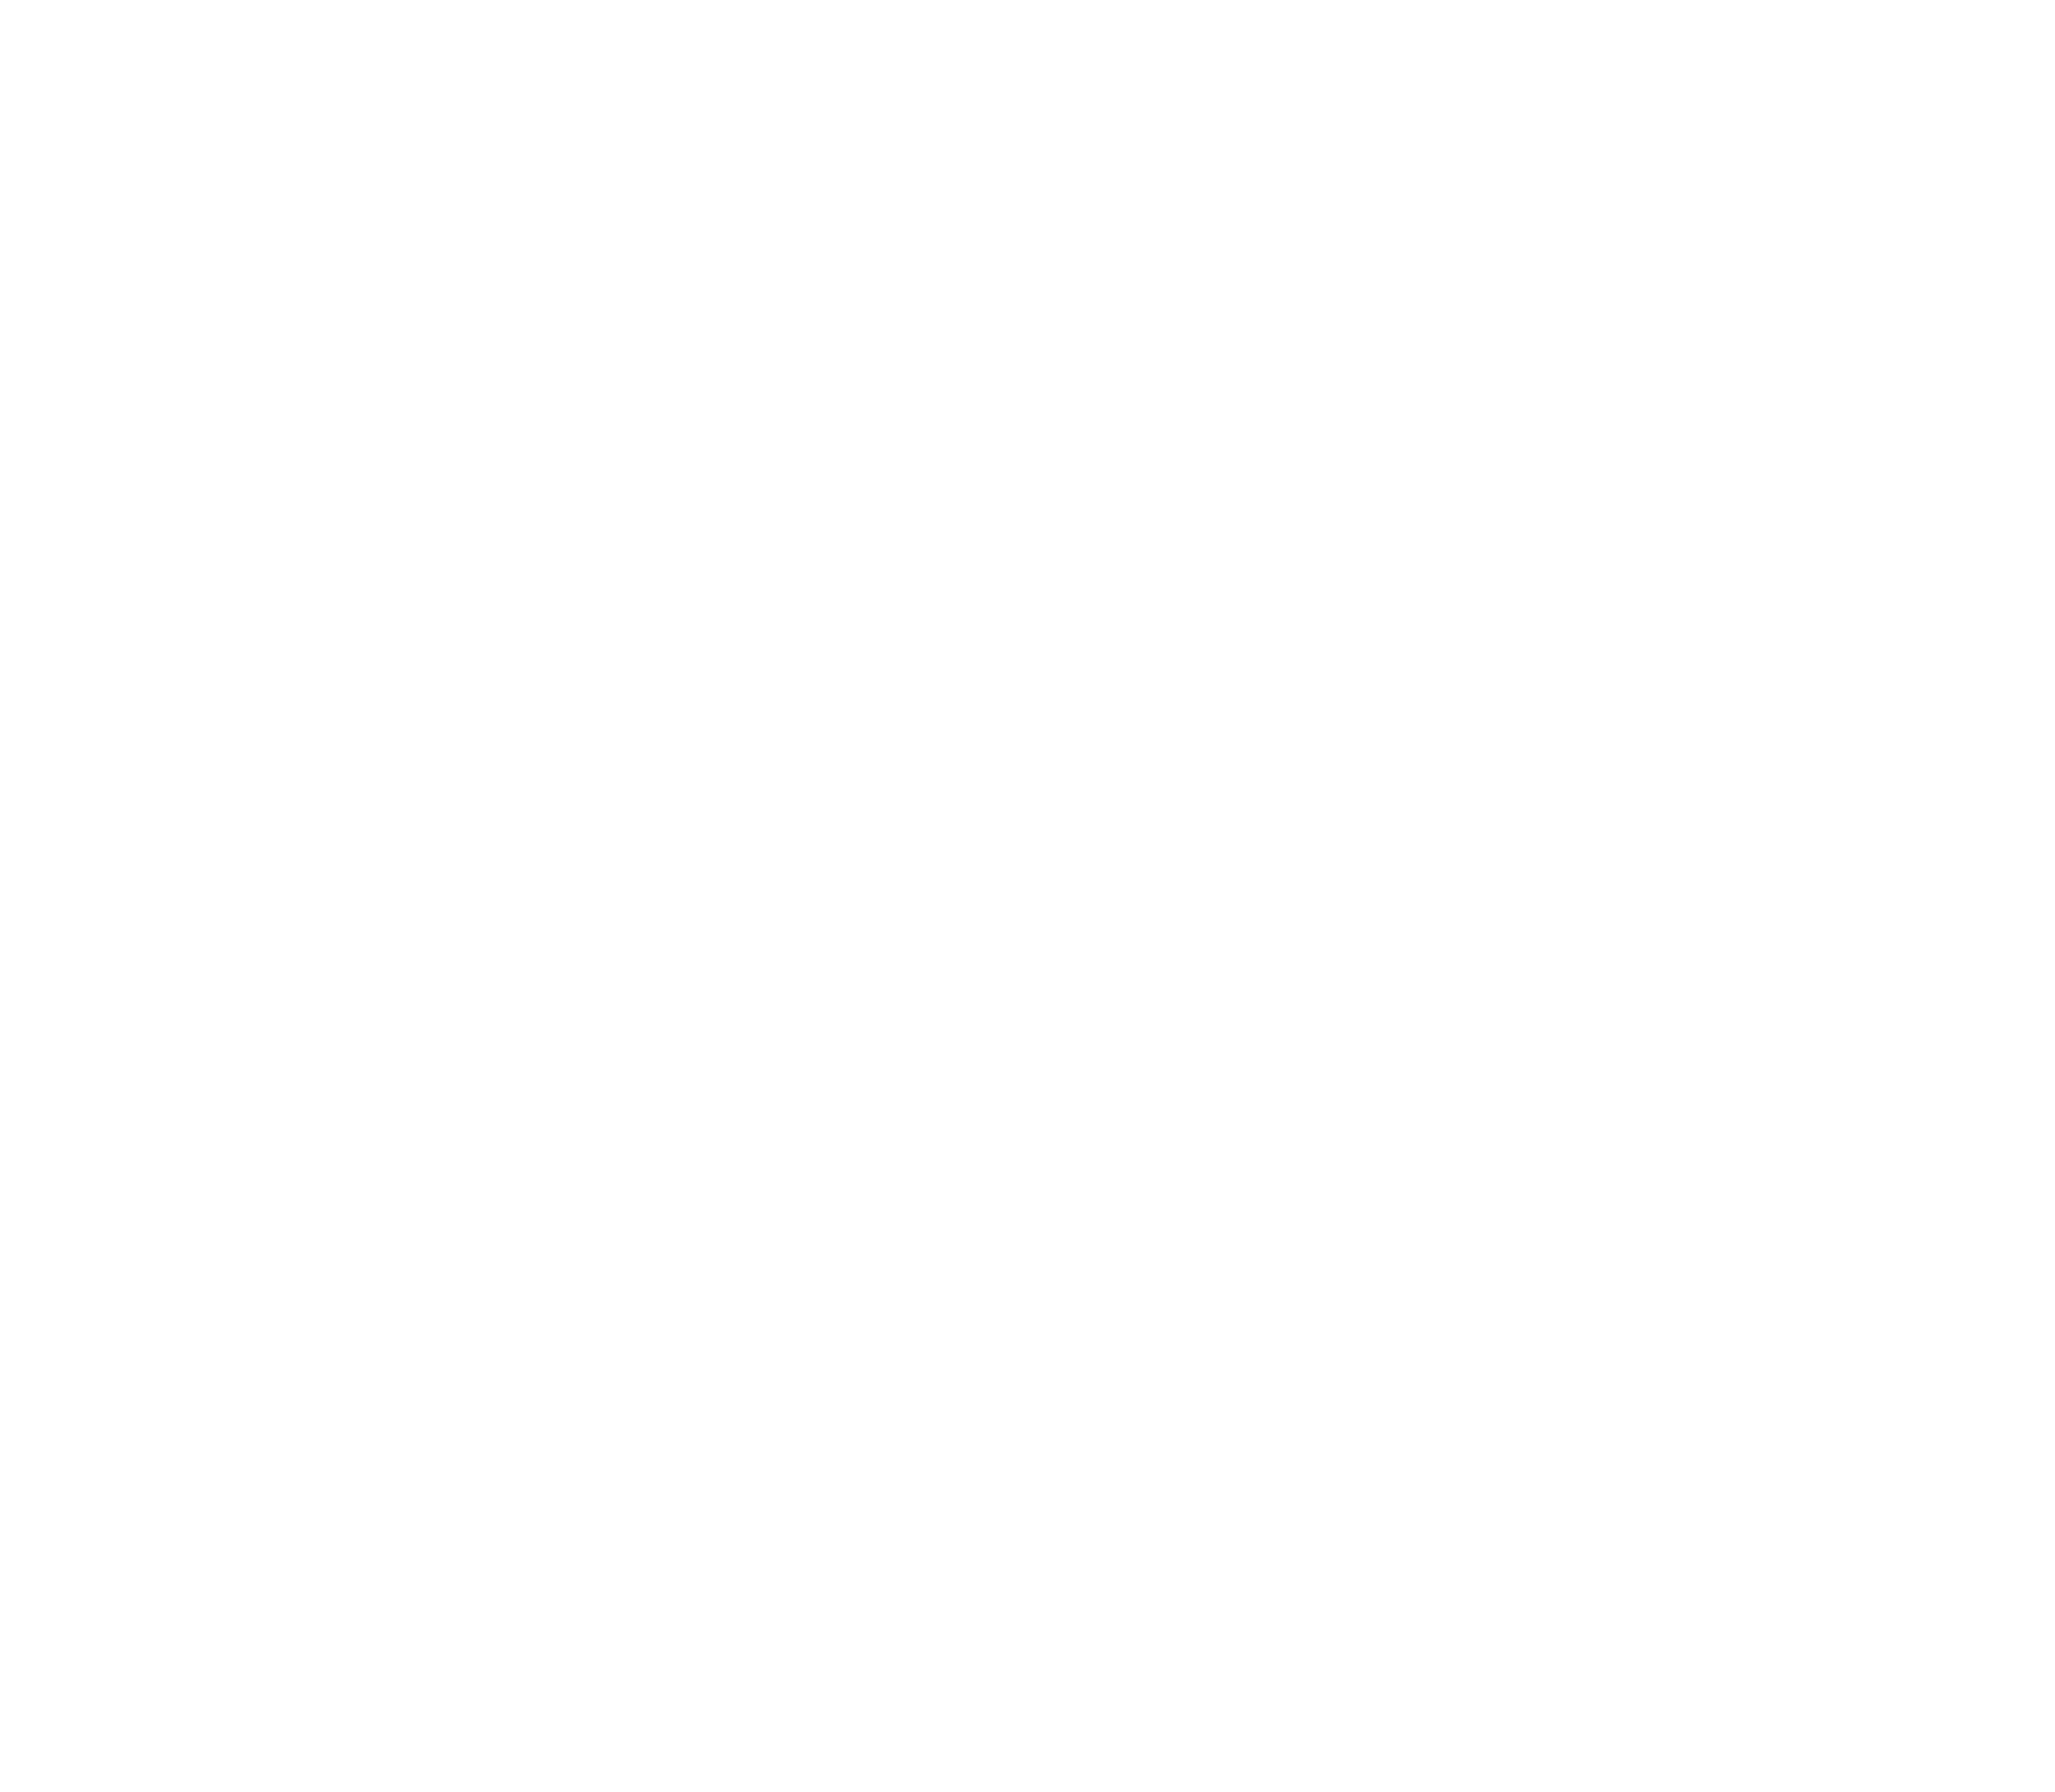 Transp White - Treedome Est. 2016-01 copy.png